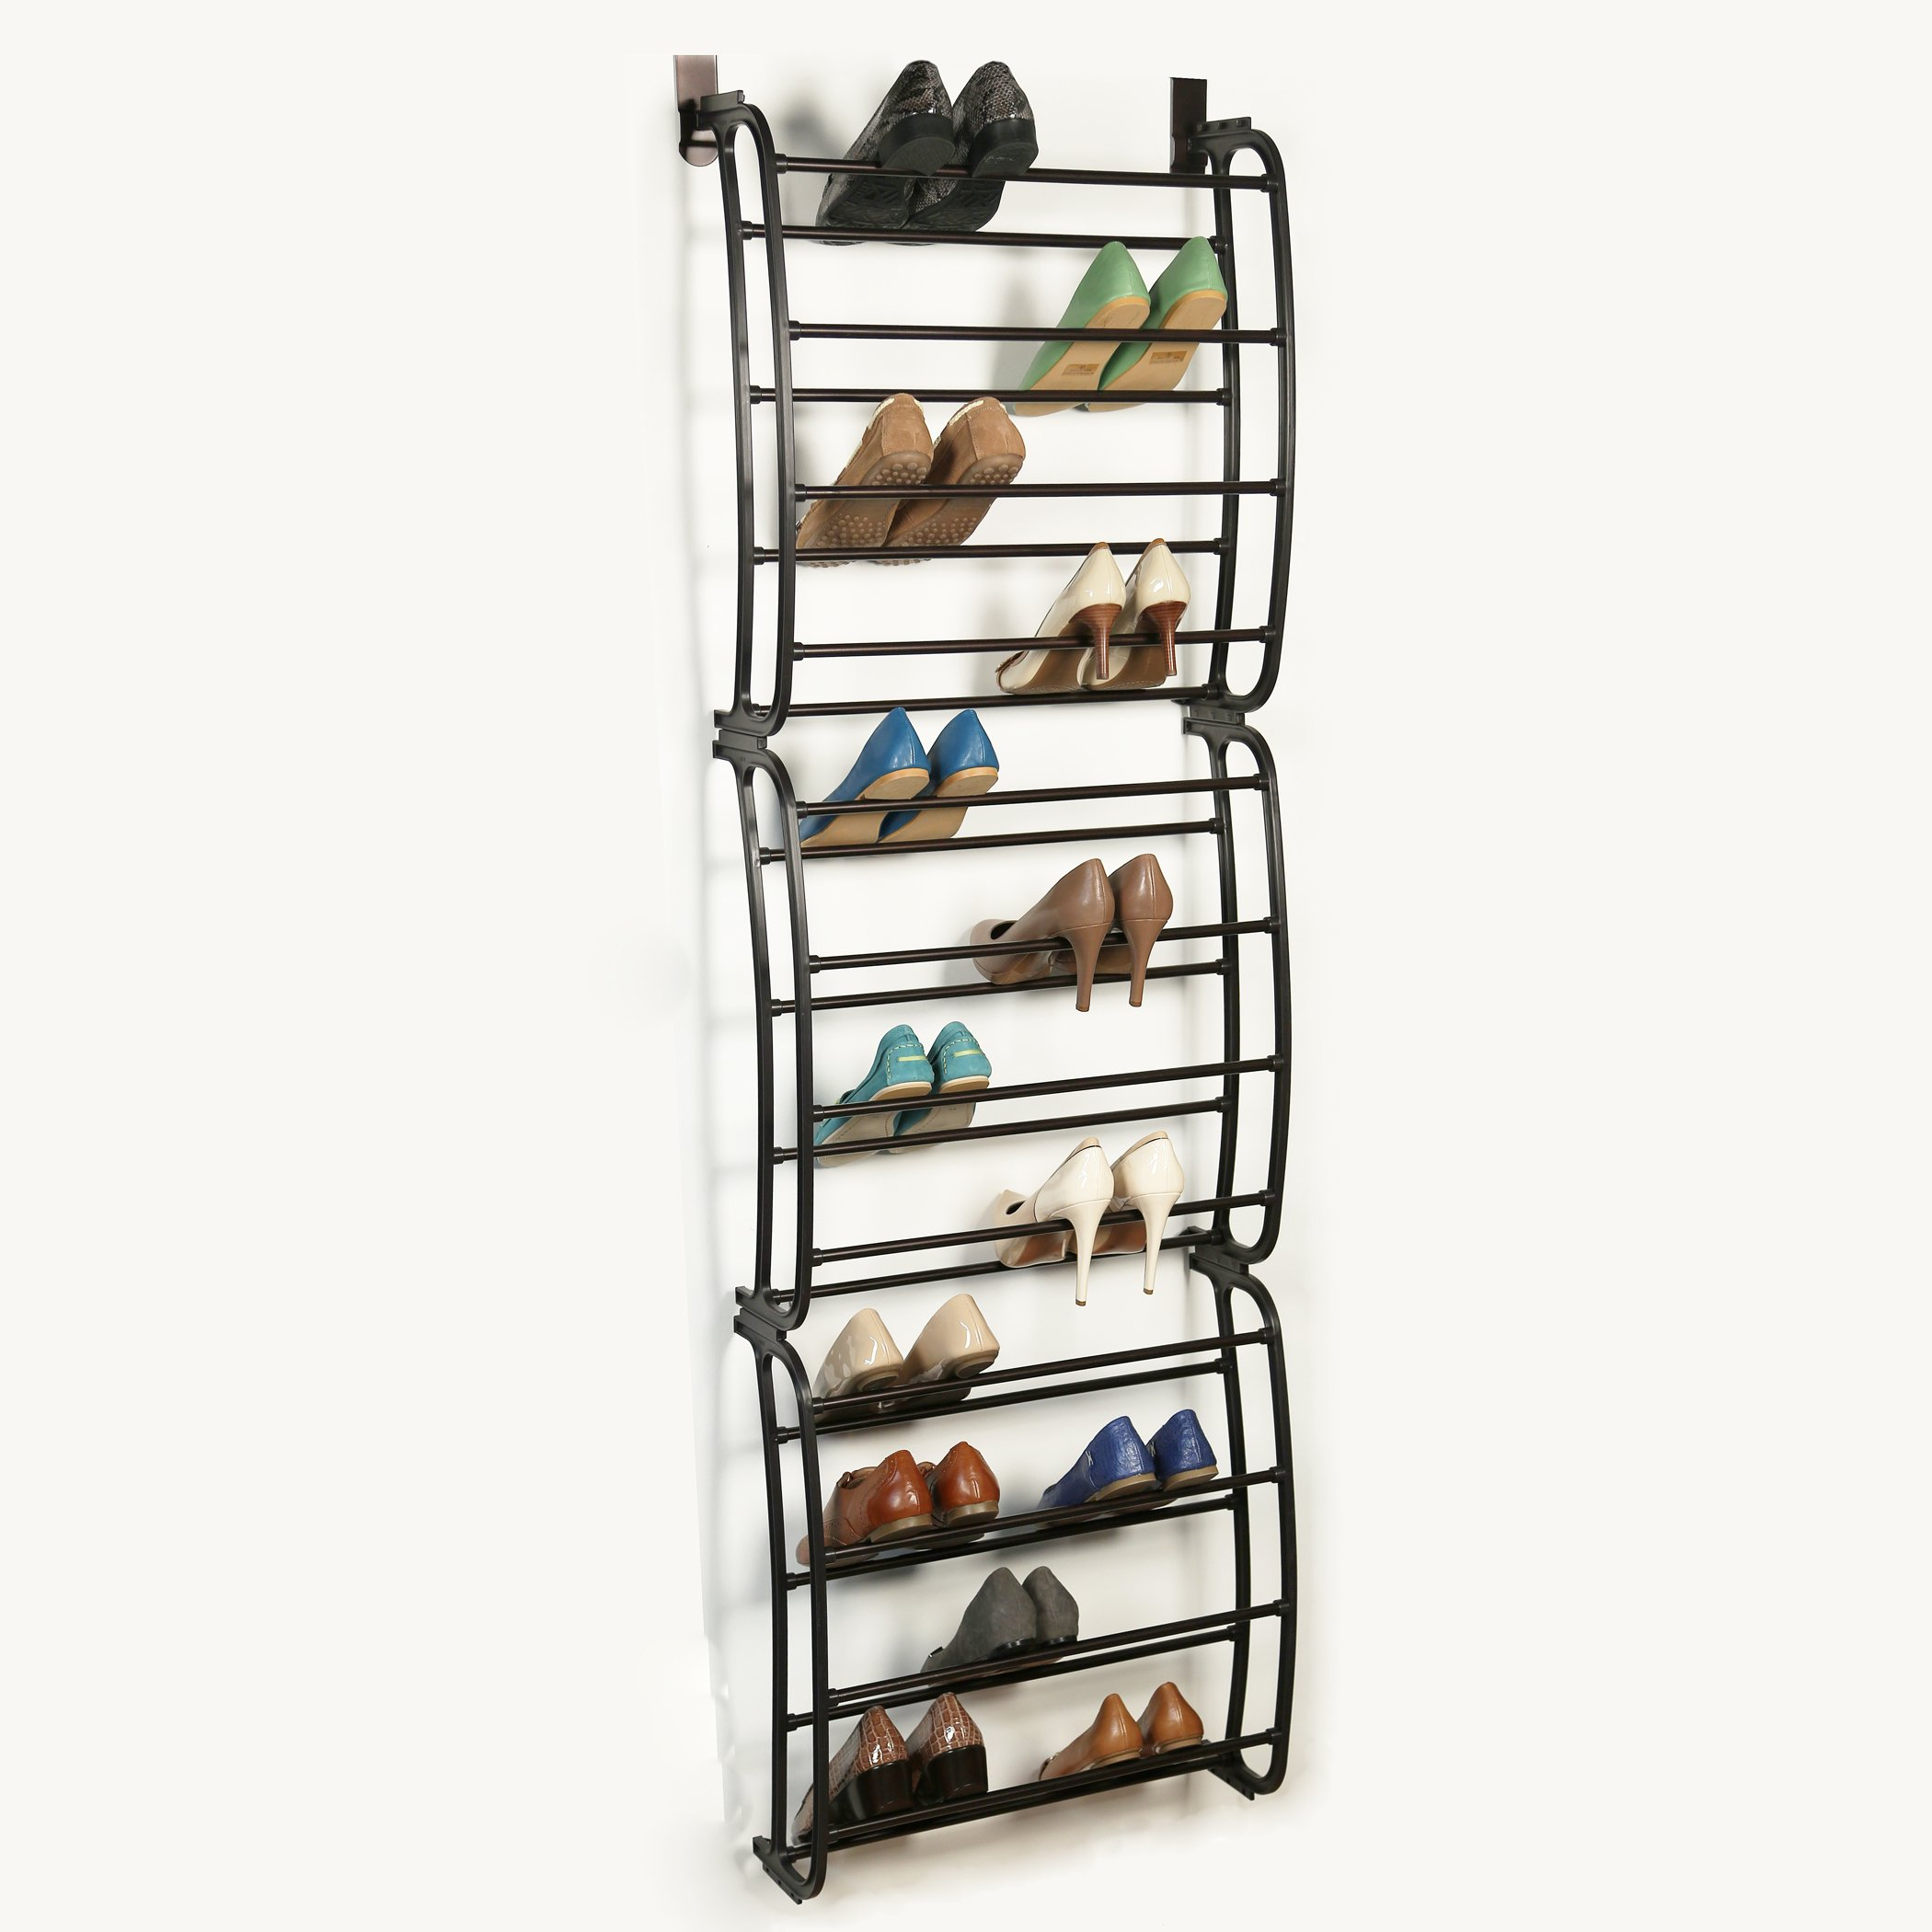 Richards Homewares Over The Over The Door (36 Pair) Over The Rack-36 Shoe Organizer Finish-Metal Tubes-No Tools Required-Easy Assembly-22.9 x 8.1 x 71.2, Bronze by Richards Homewares